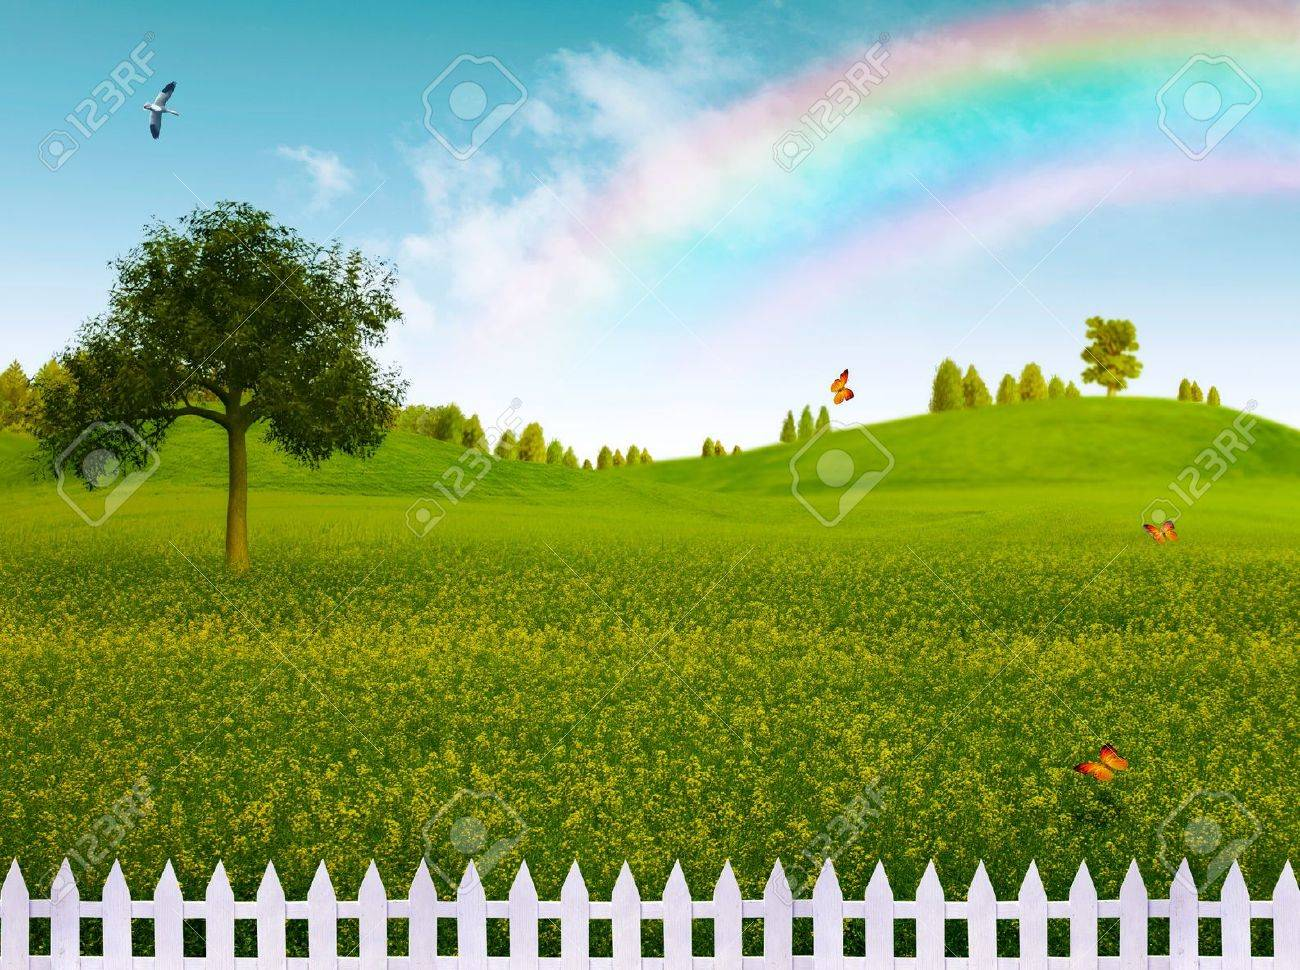 Countryside, abstract natural landscape for your design - 19931473